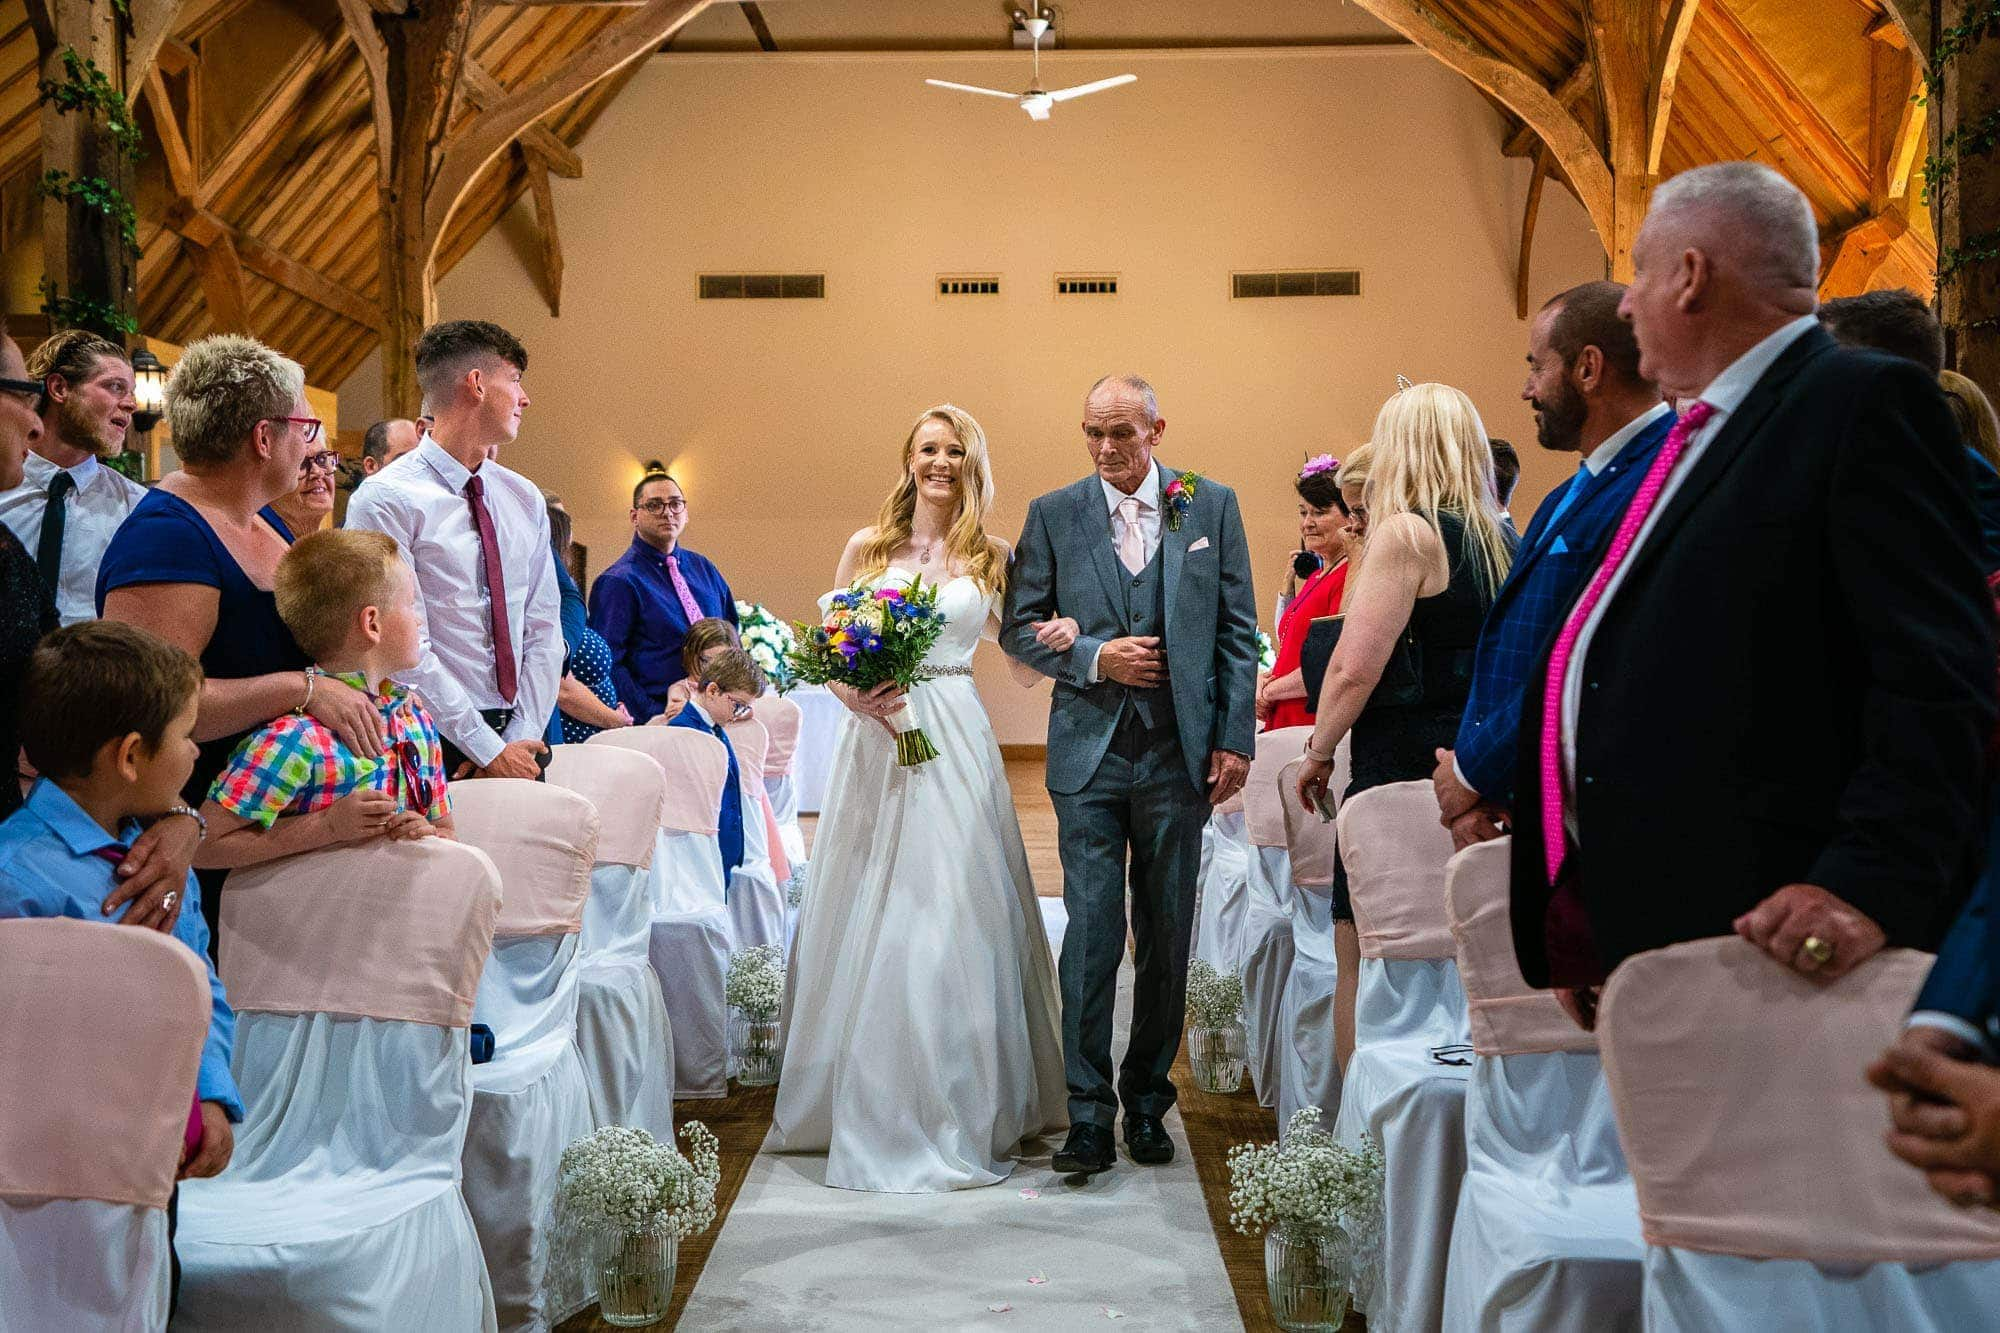 Norton Park Hotel Wedding Photographer - Bride walking down the aisle with her father in the wedding barn